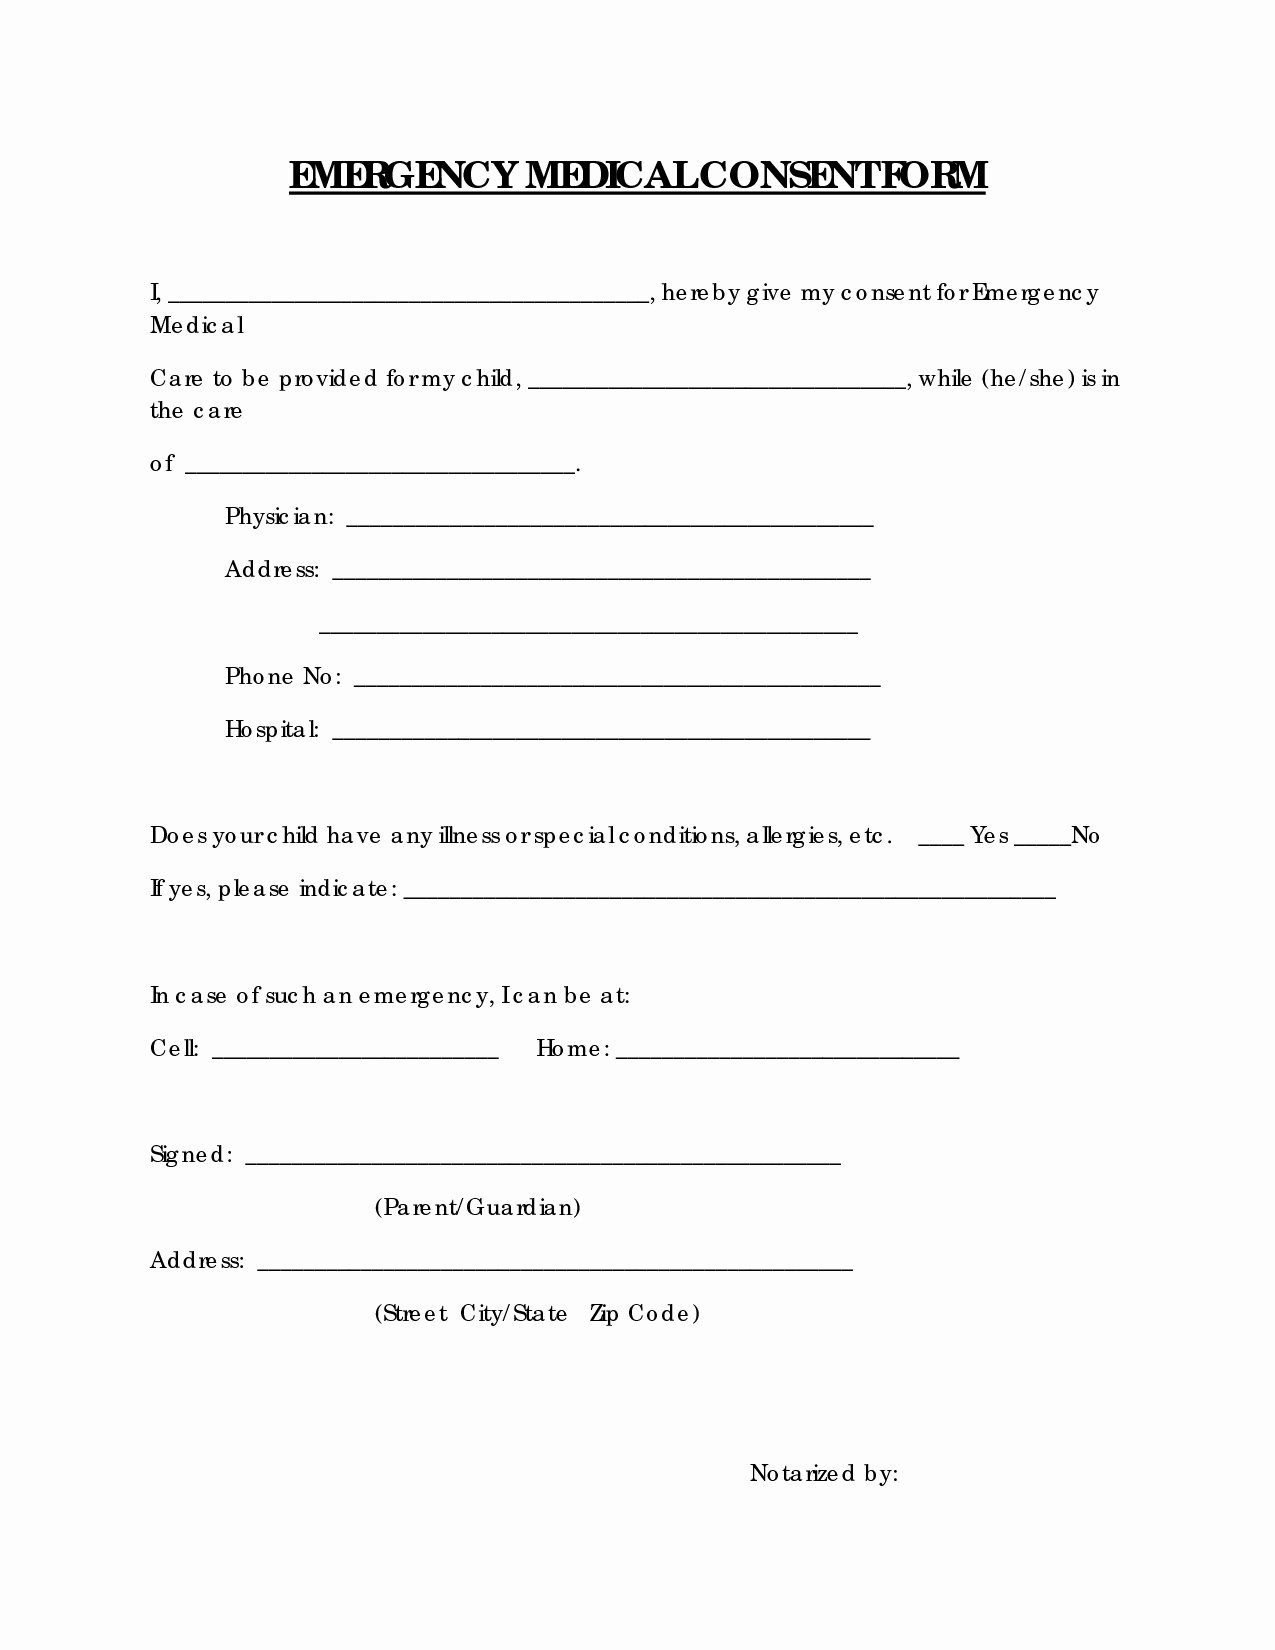 Medical Consent form Template Elegant Medical Consent Letter for Grandparents Template